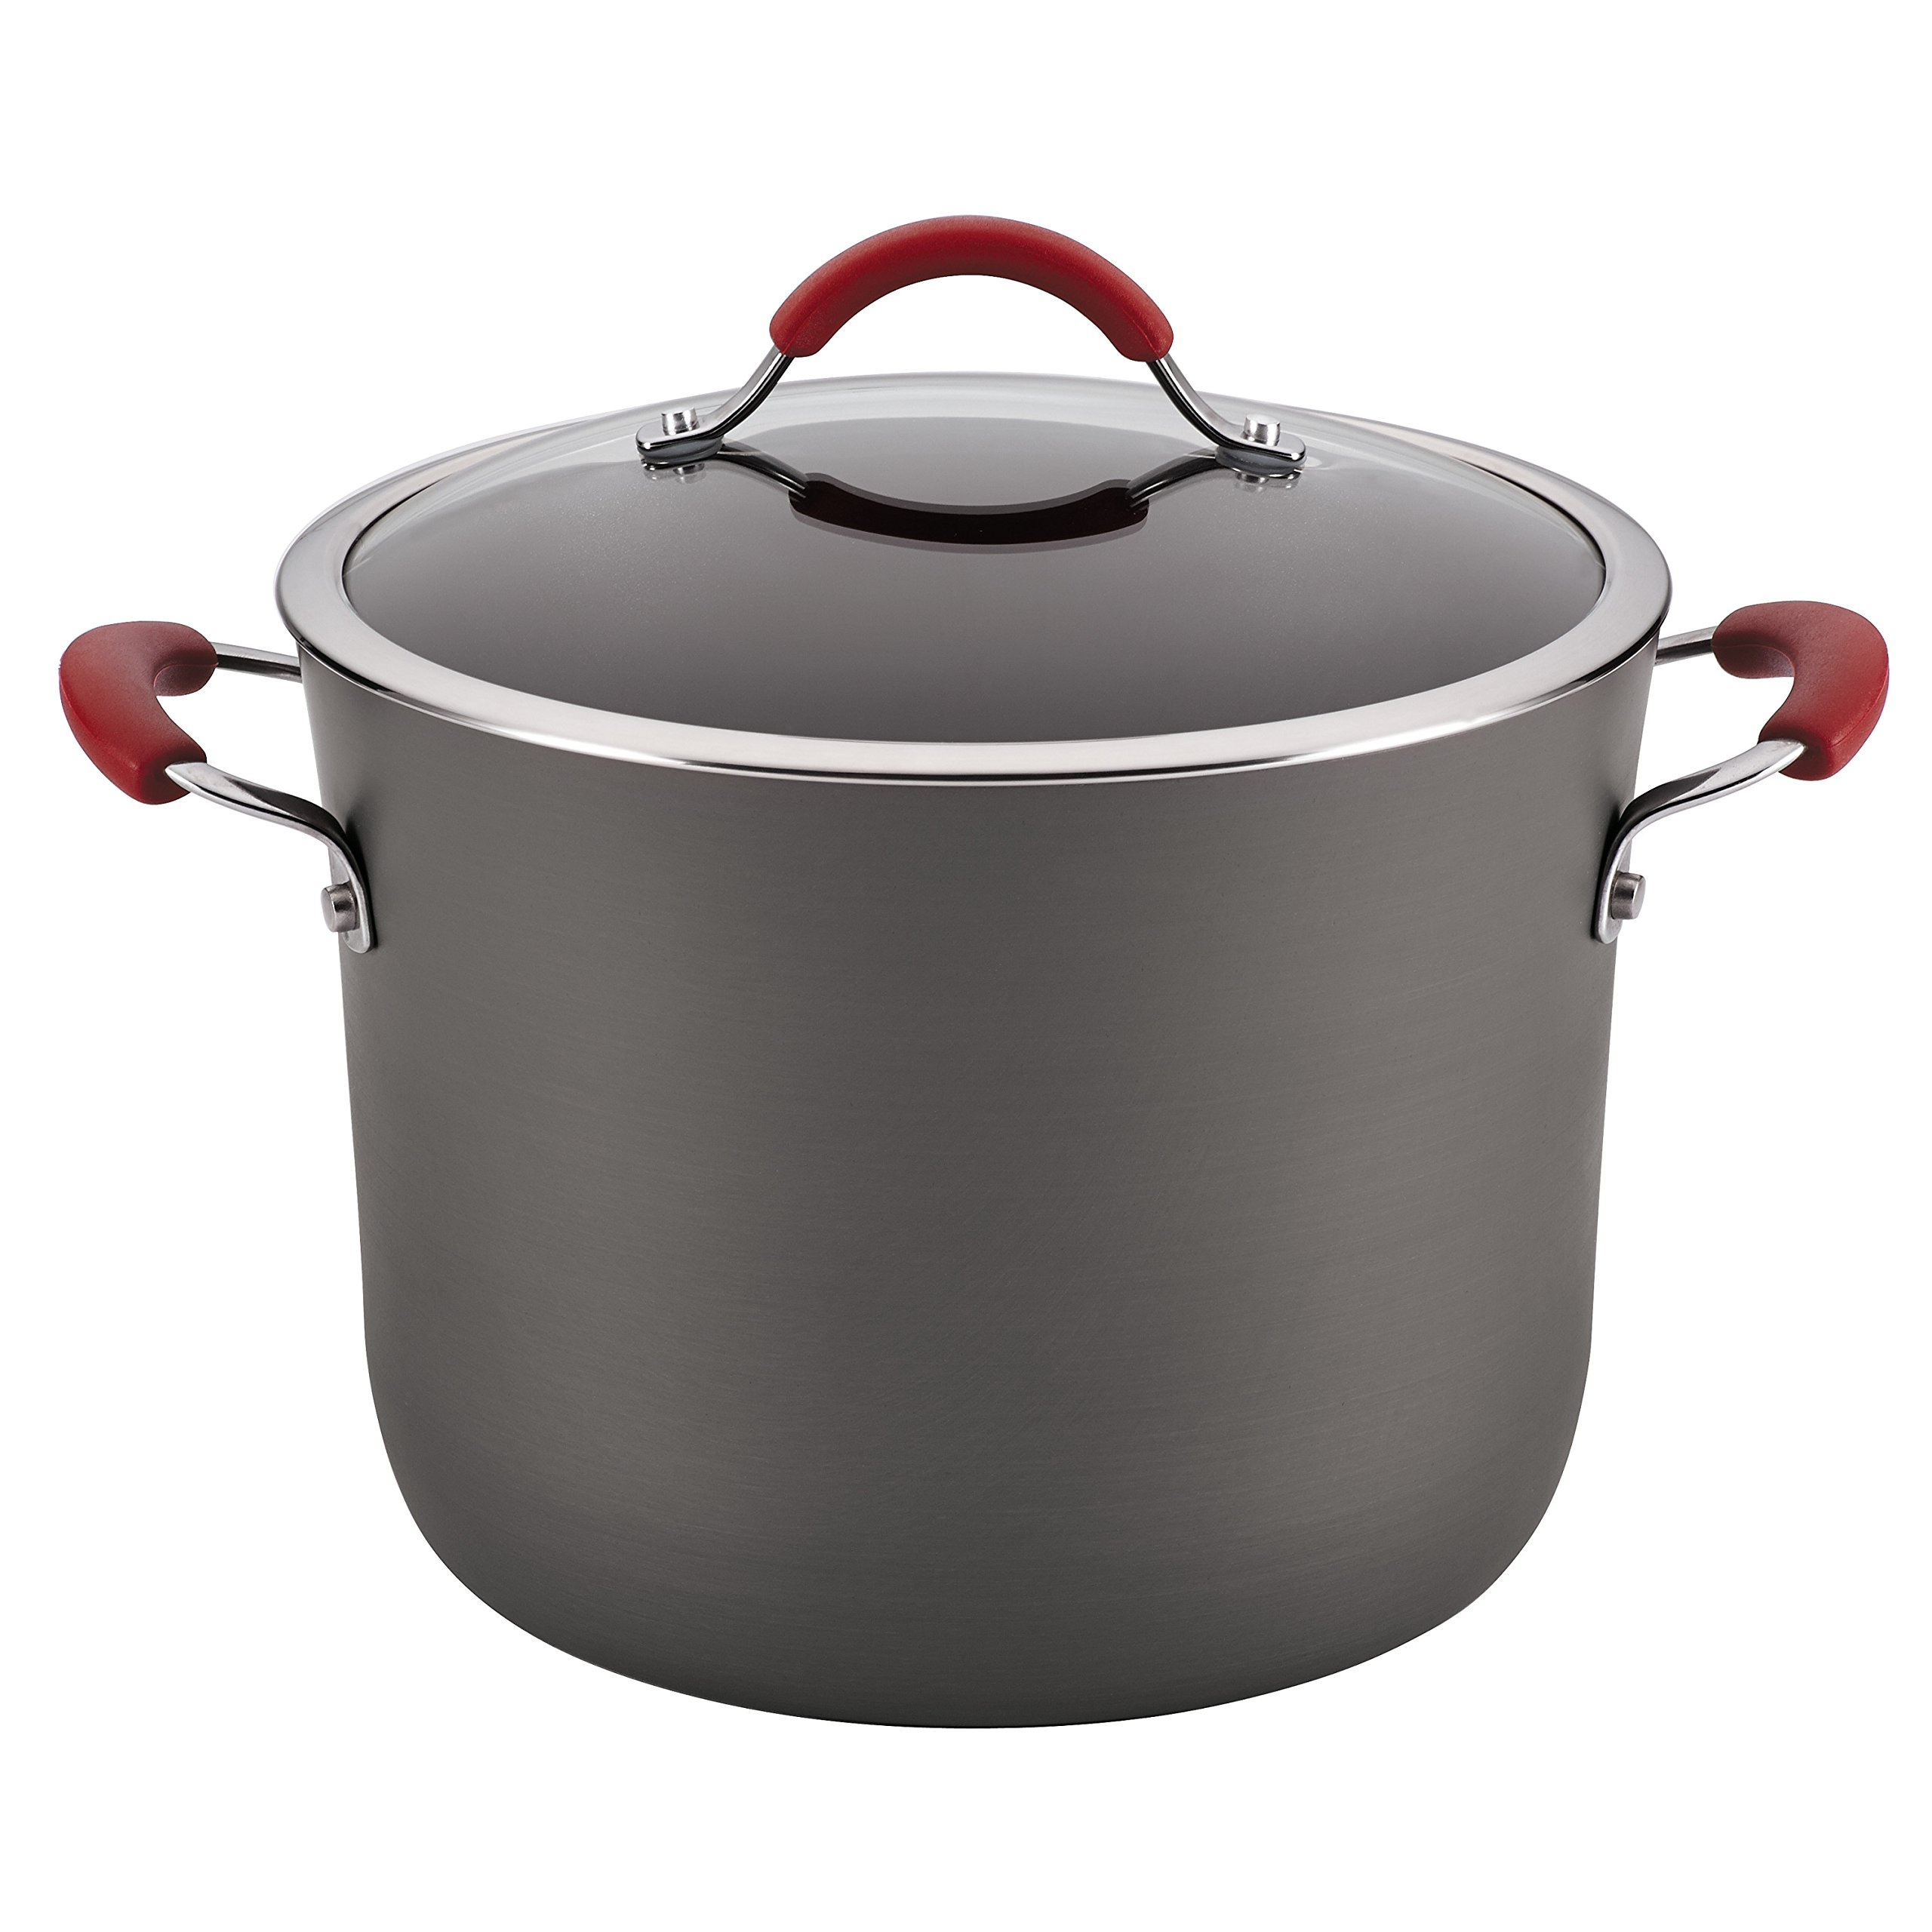 Rachael Ray Cucina Hard-Anodized Nonstick Covered Stockpot, 10-Quart, Gray, Cranberry Red Handles